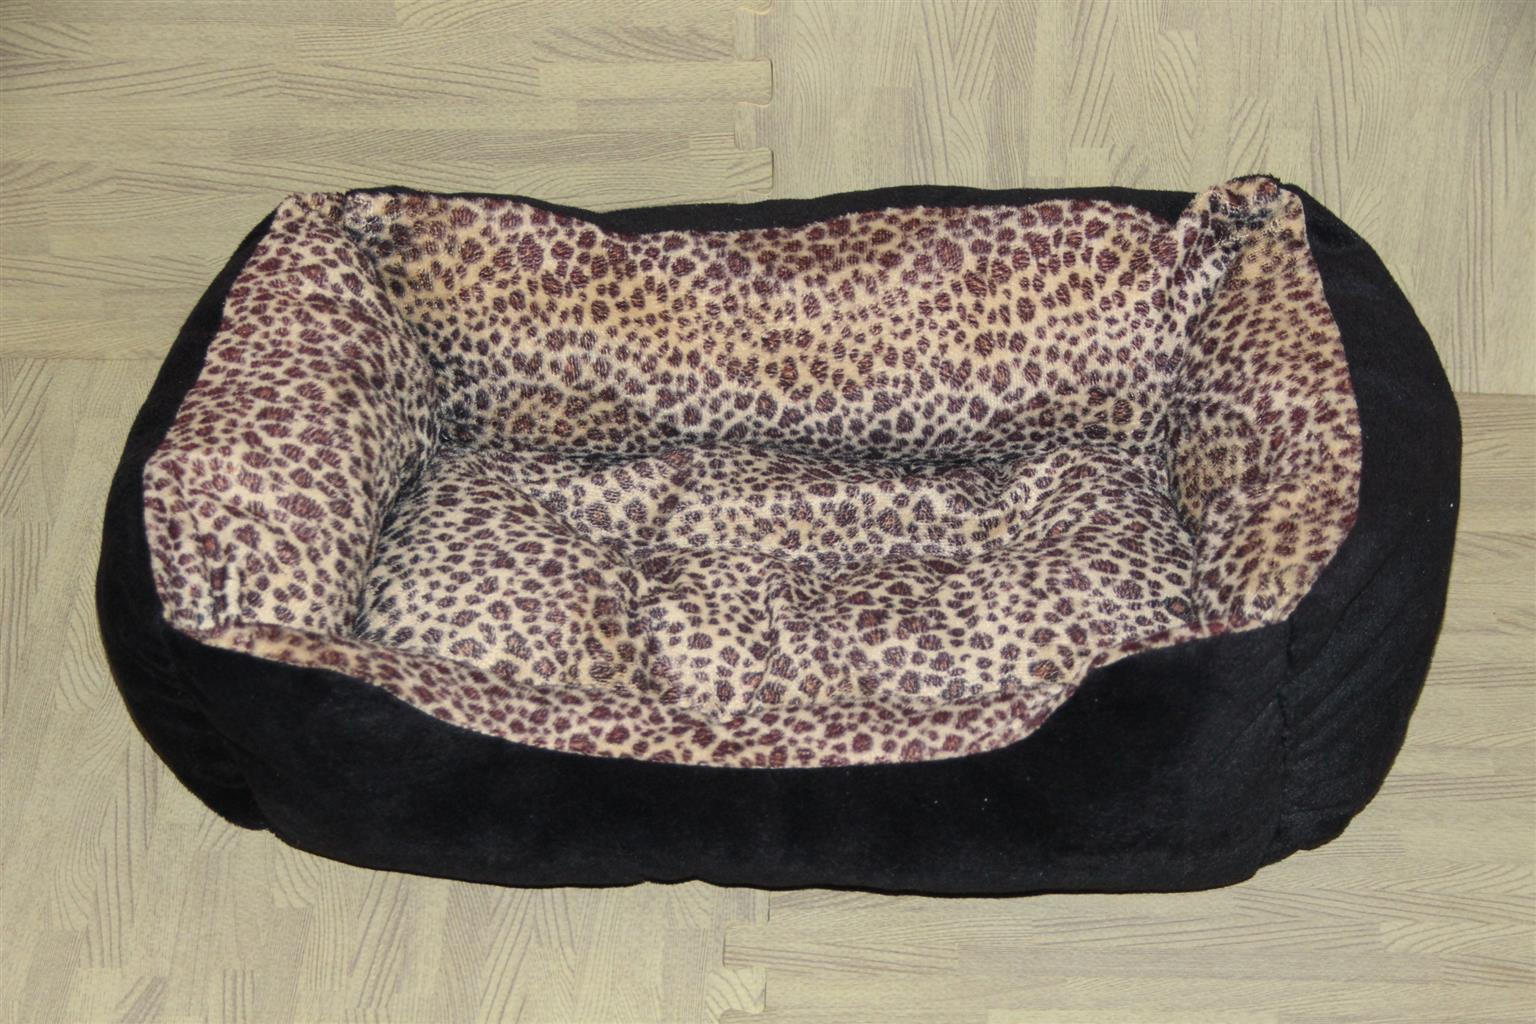 Cat / dog bed, very soft and puffy